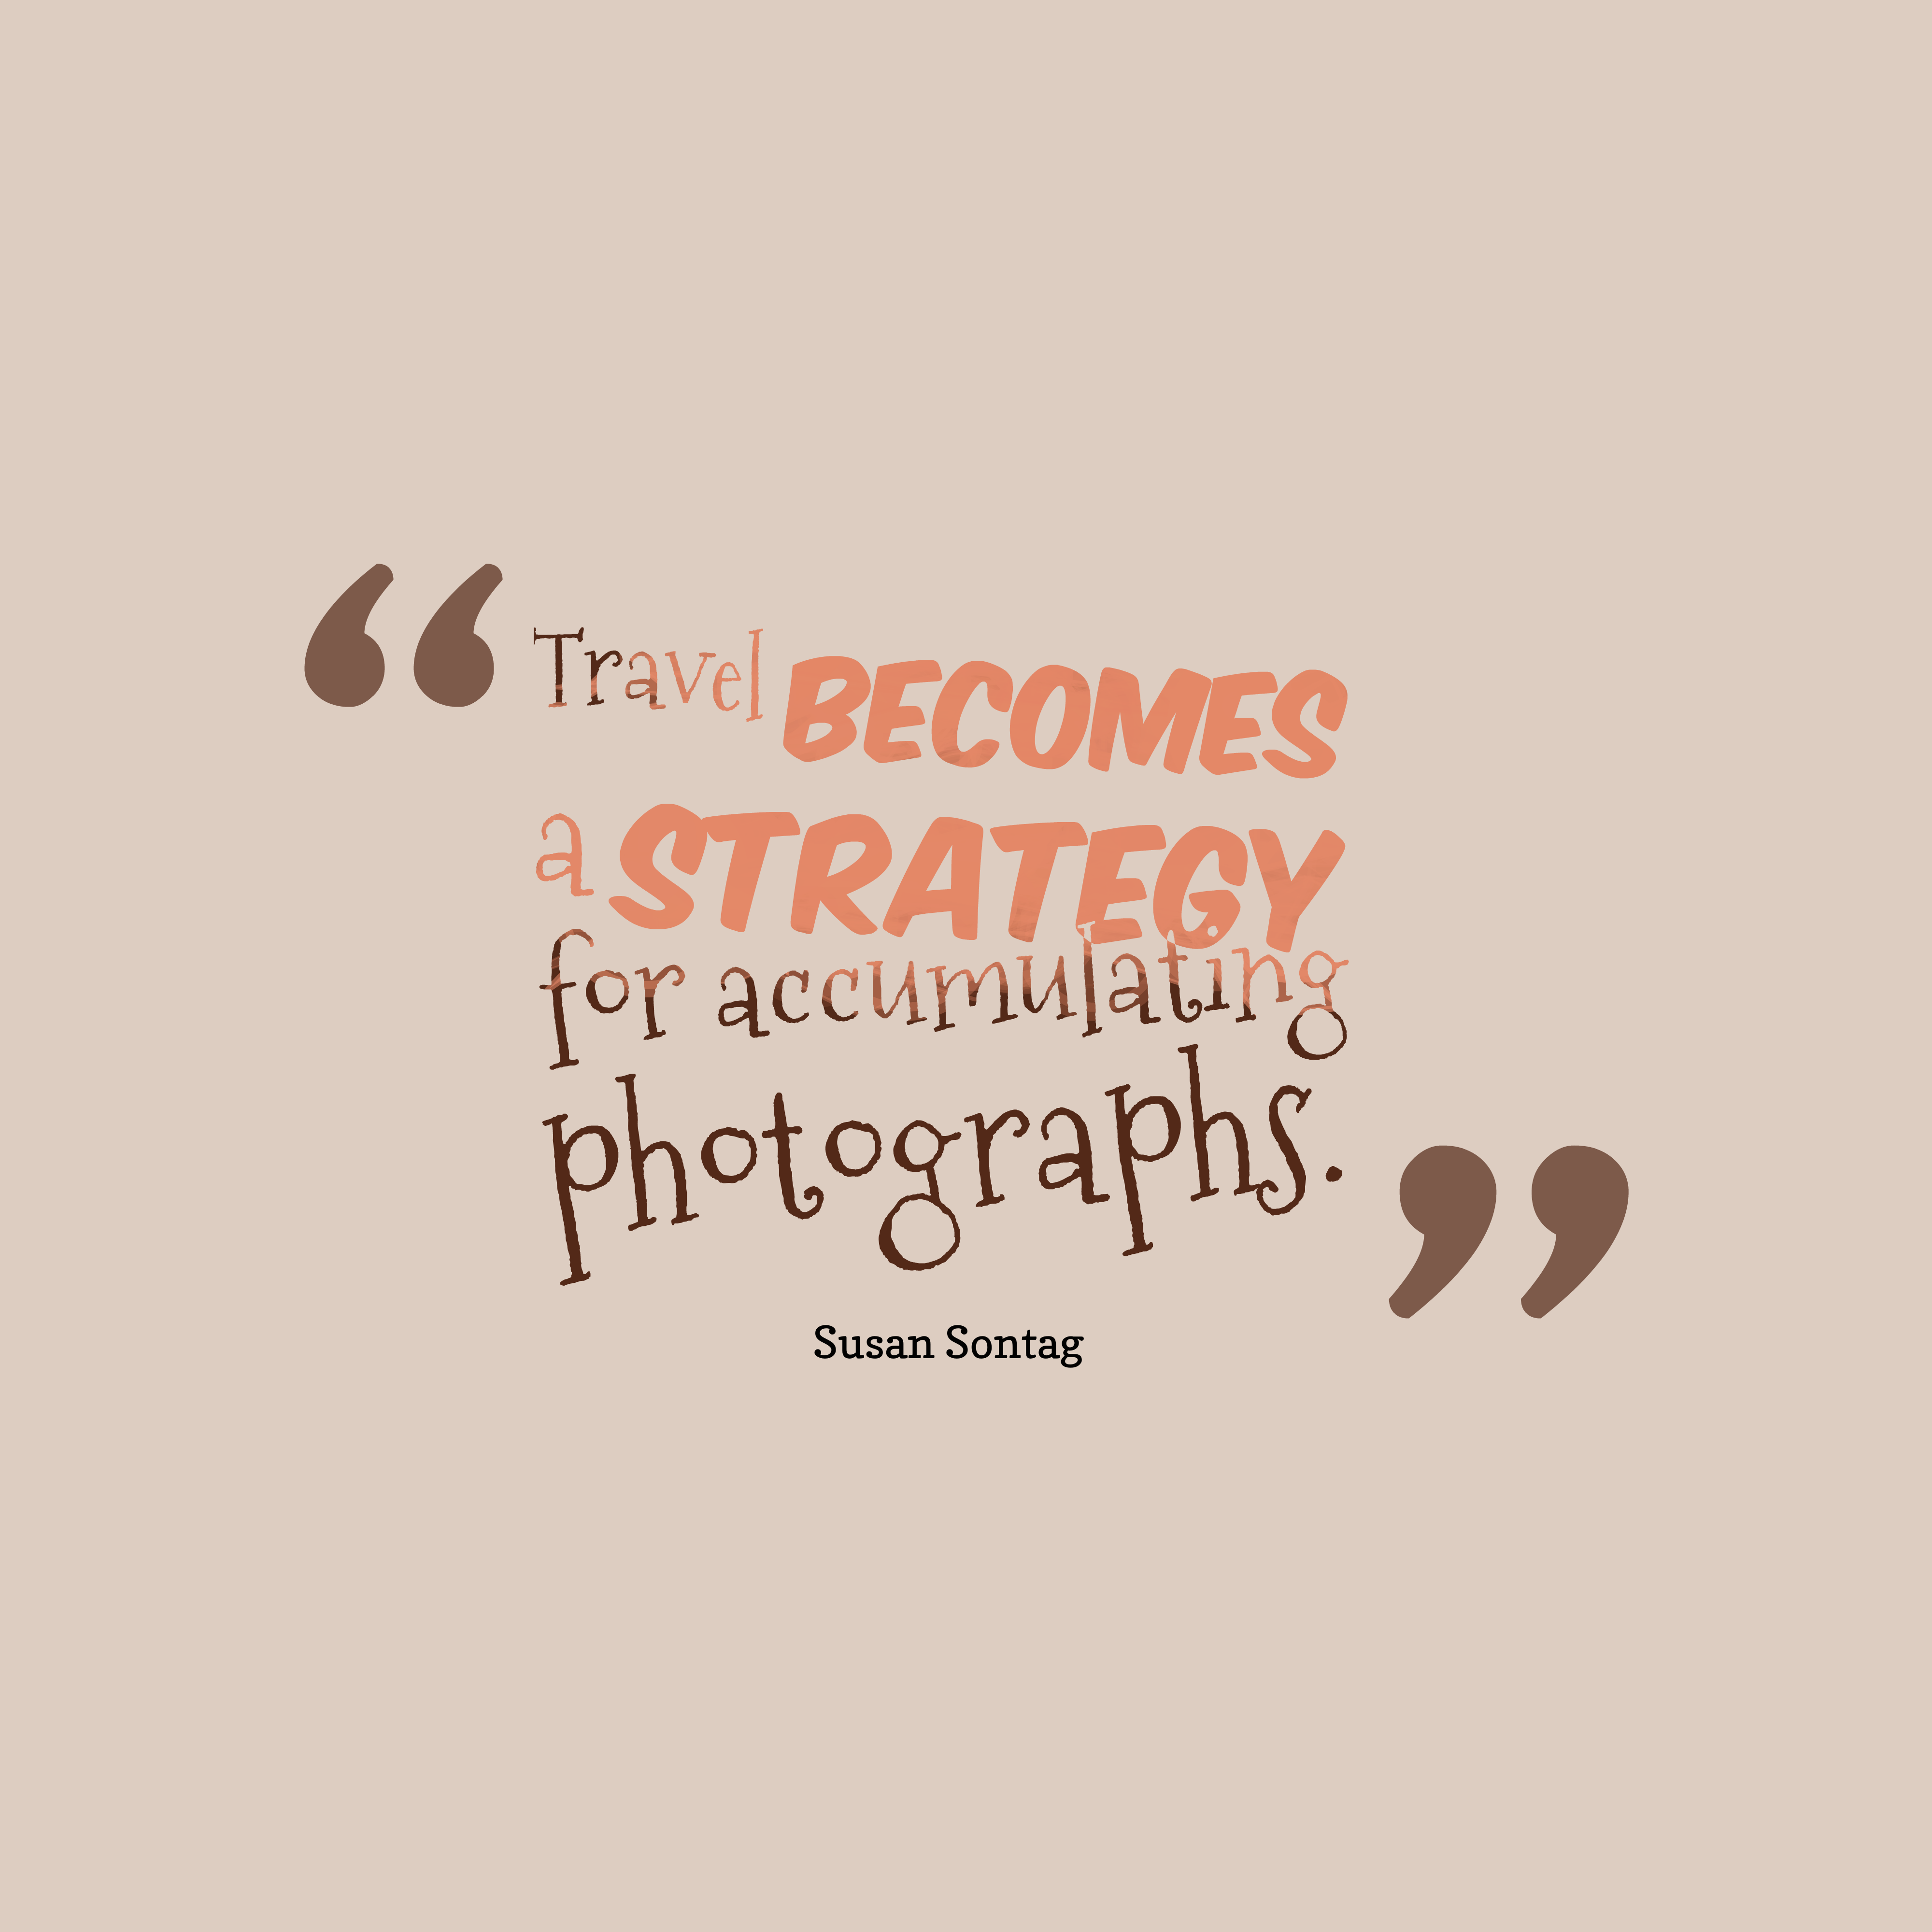 Quotes image of Travel becomes a strategy for accumulating photographs.